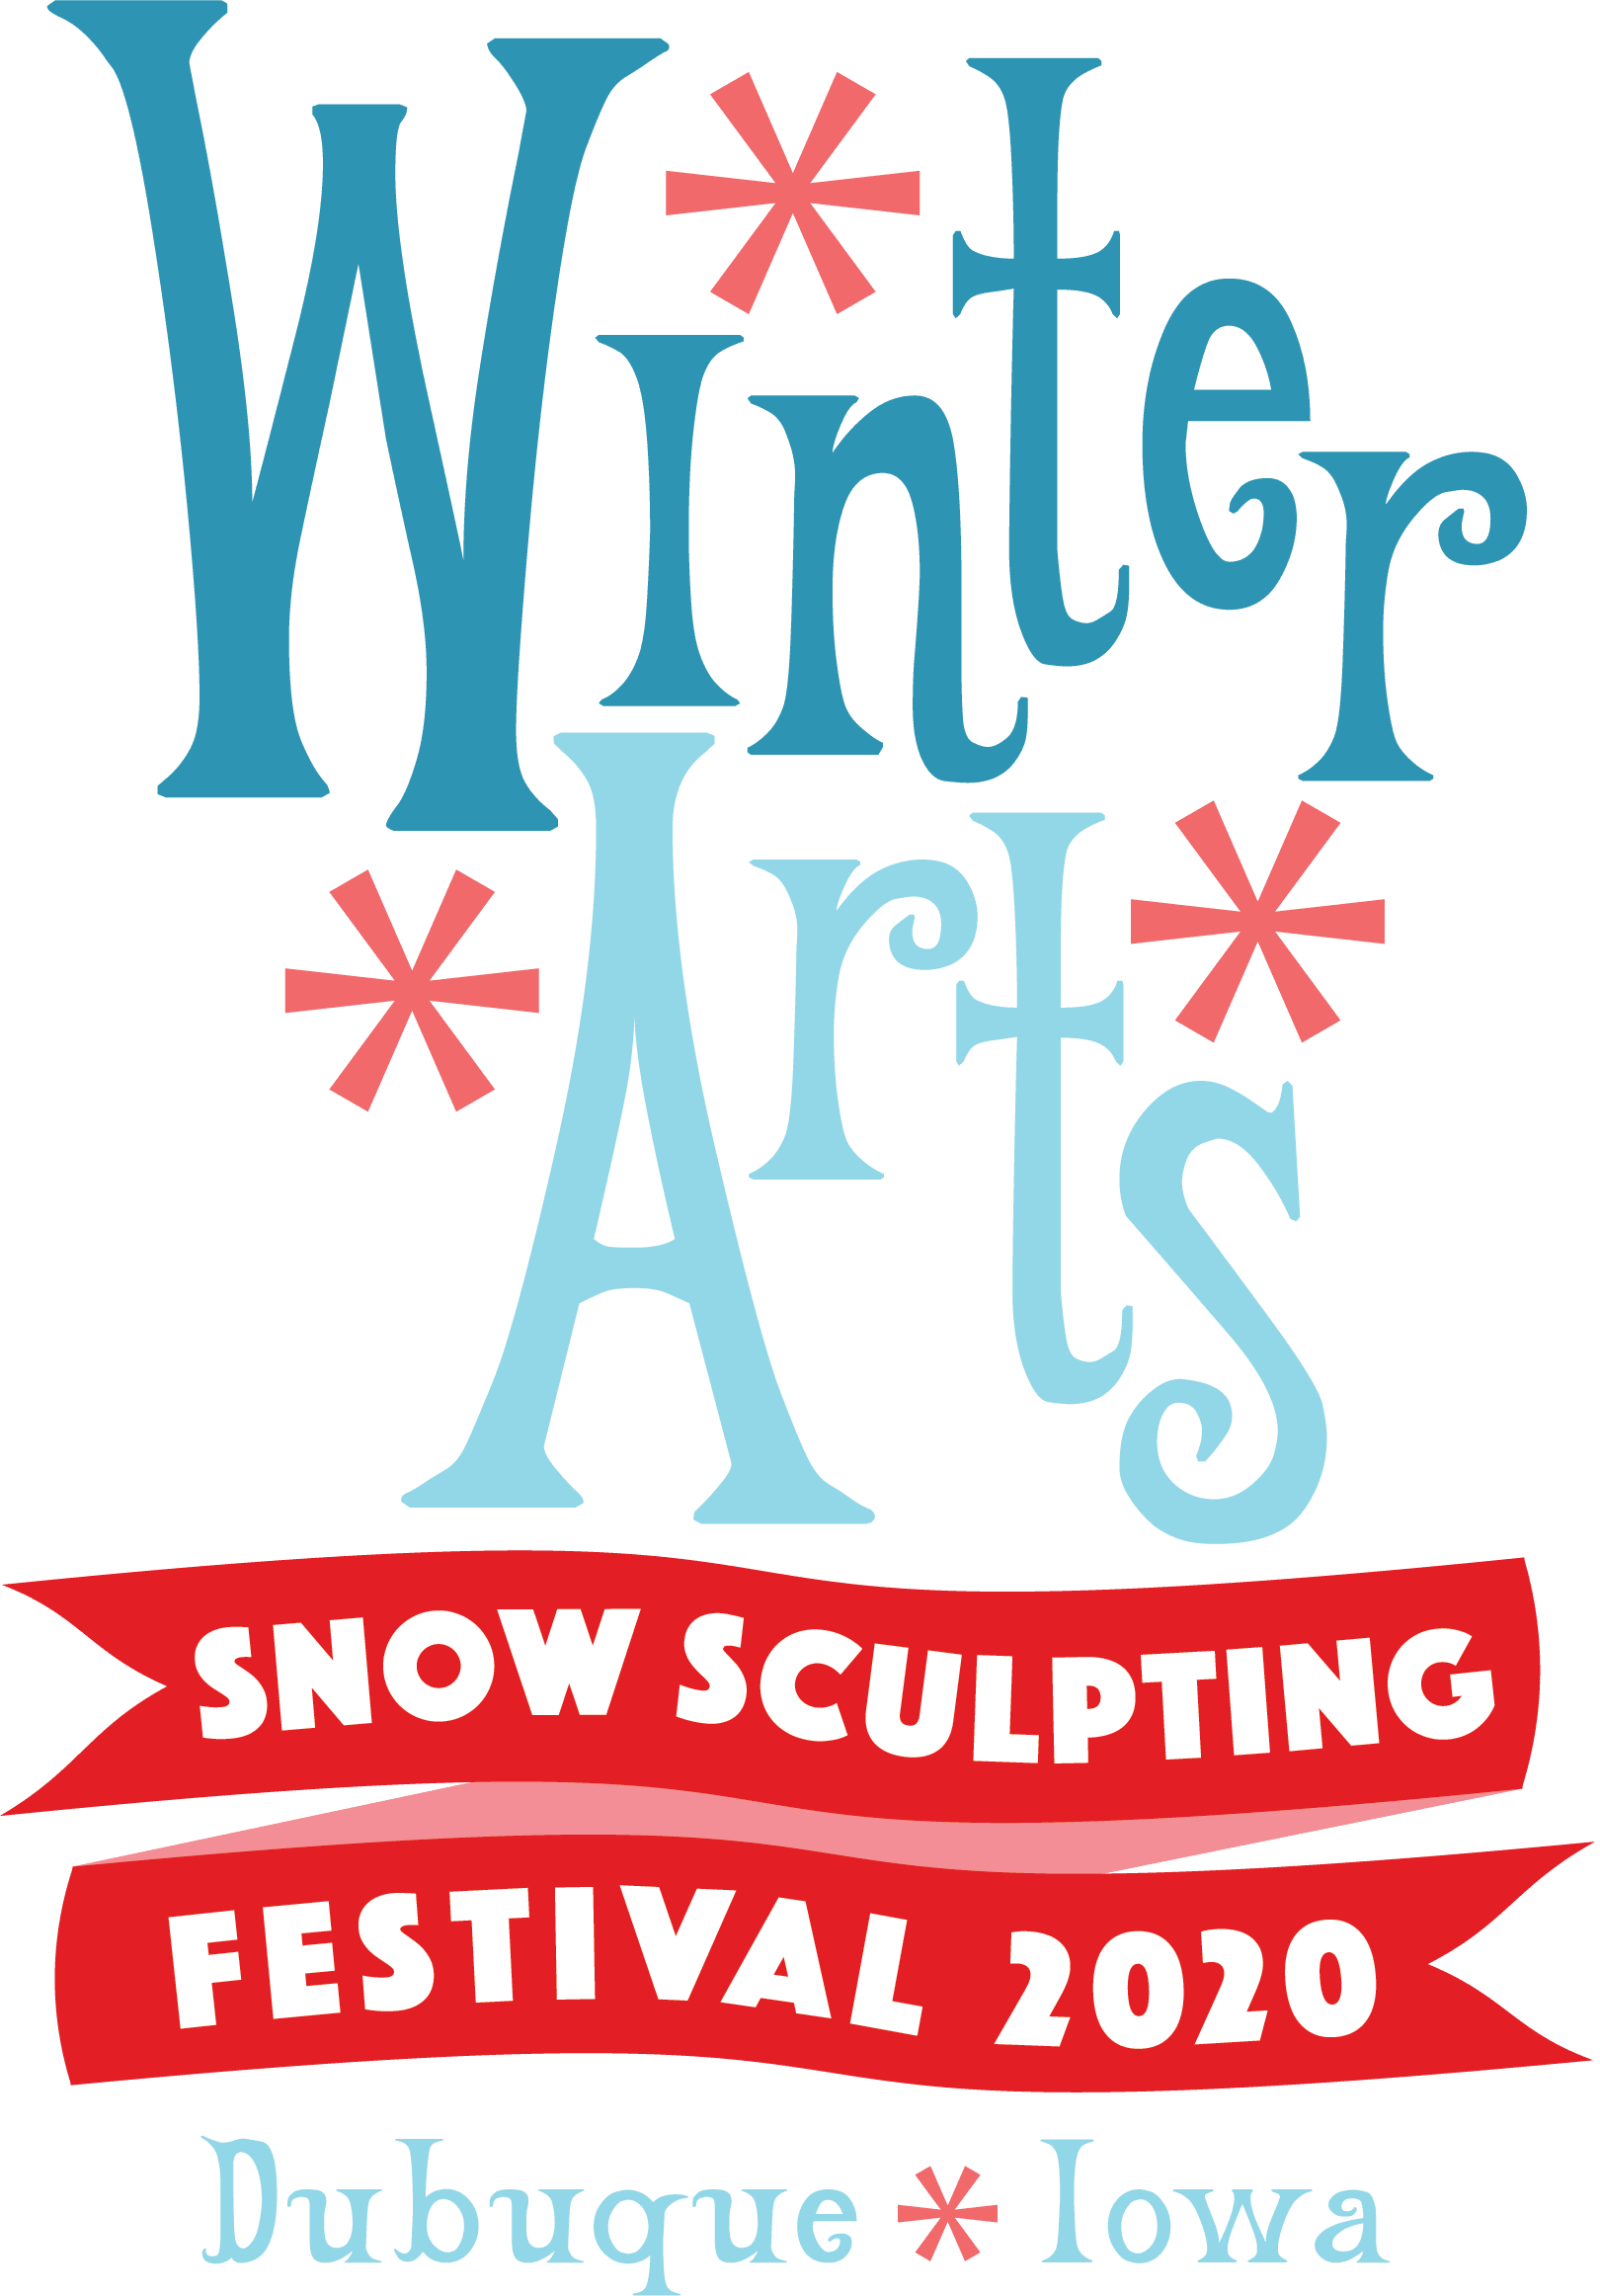 Winter Arts Snow Sculpting Festival logo from 2019